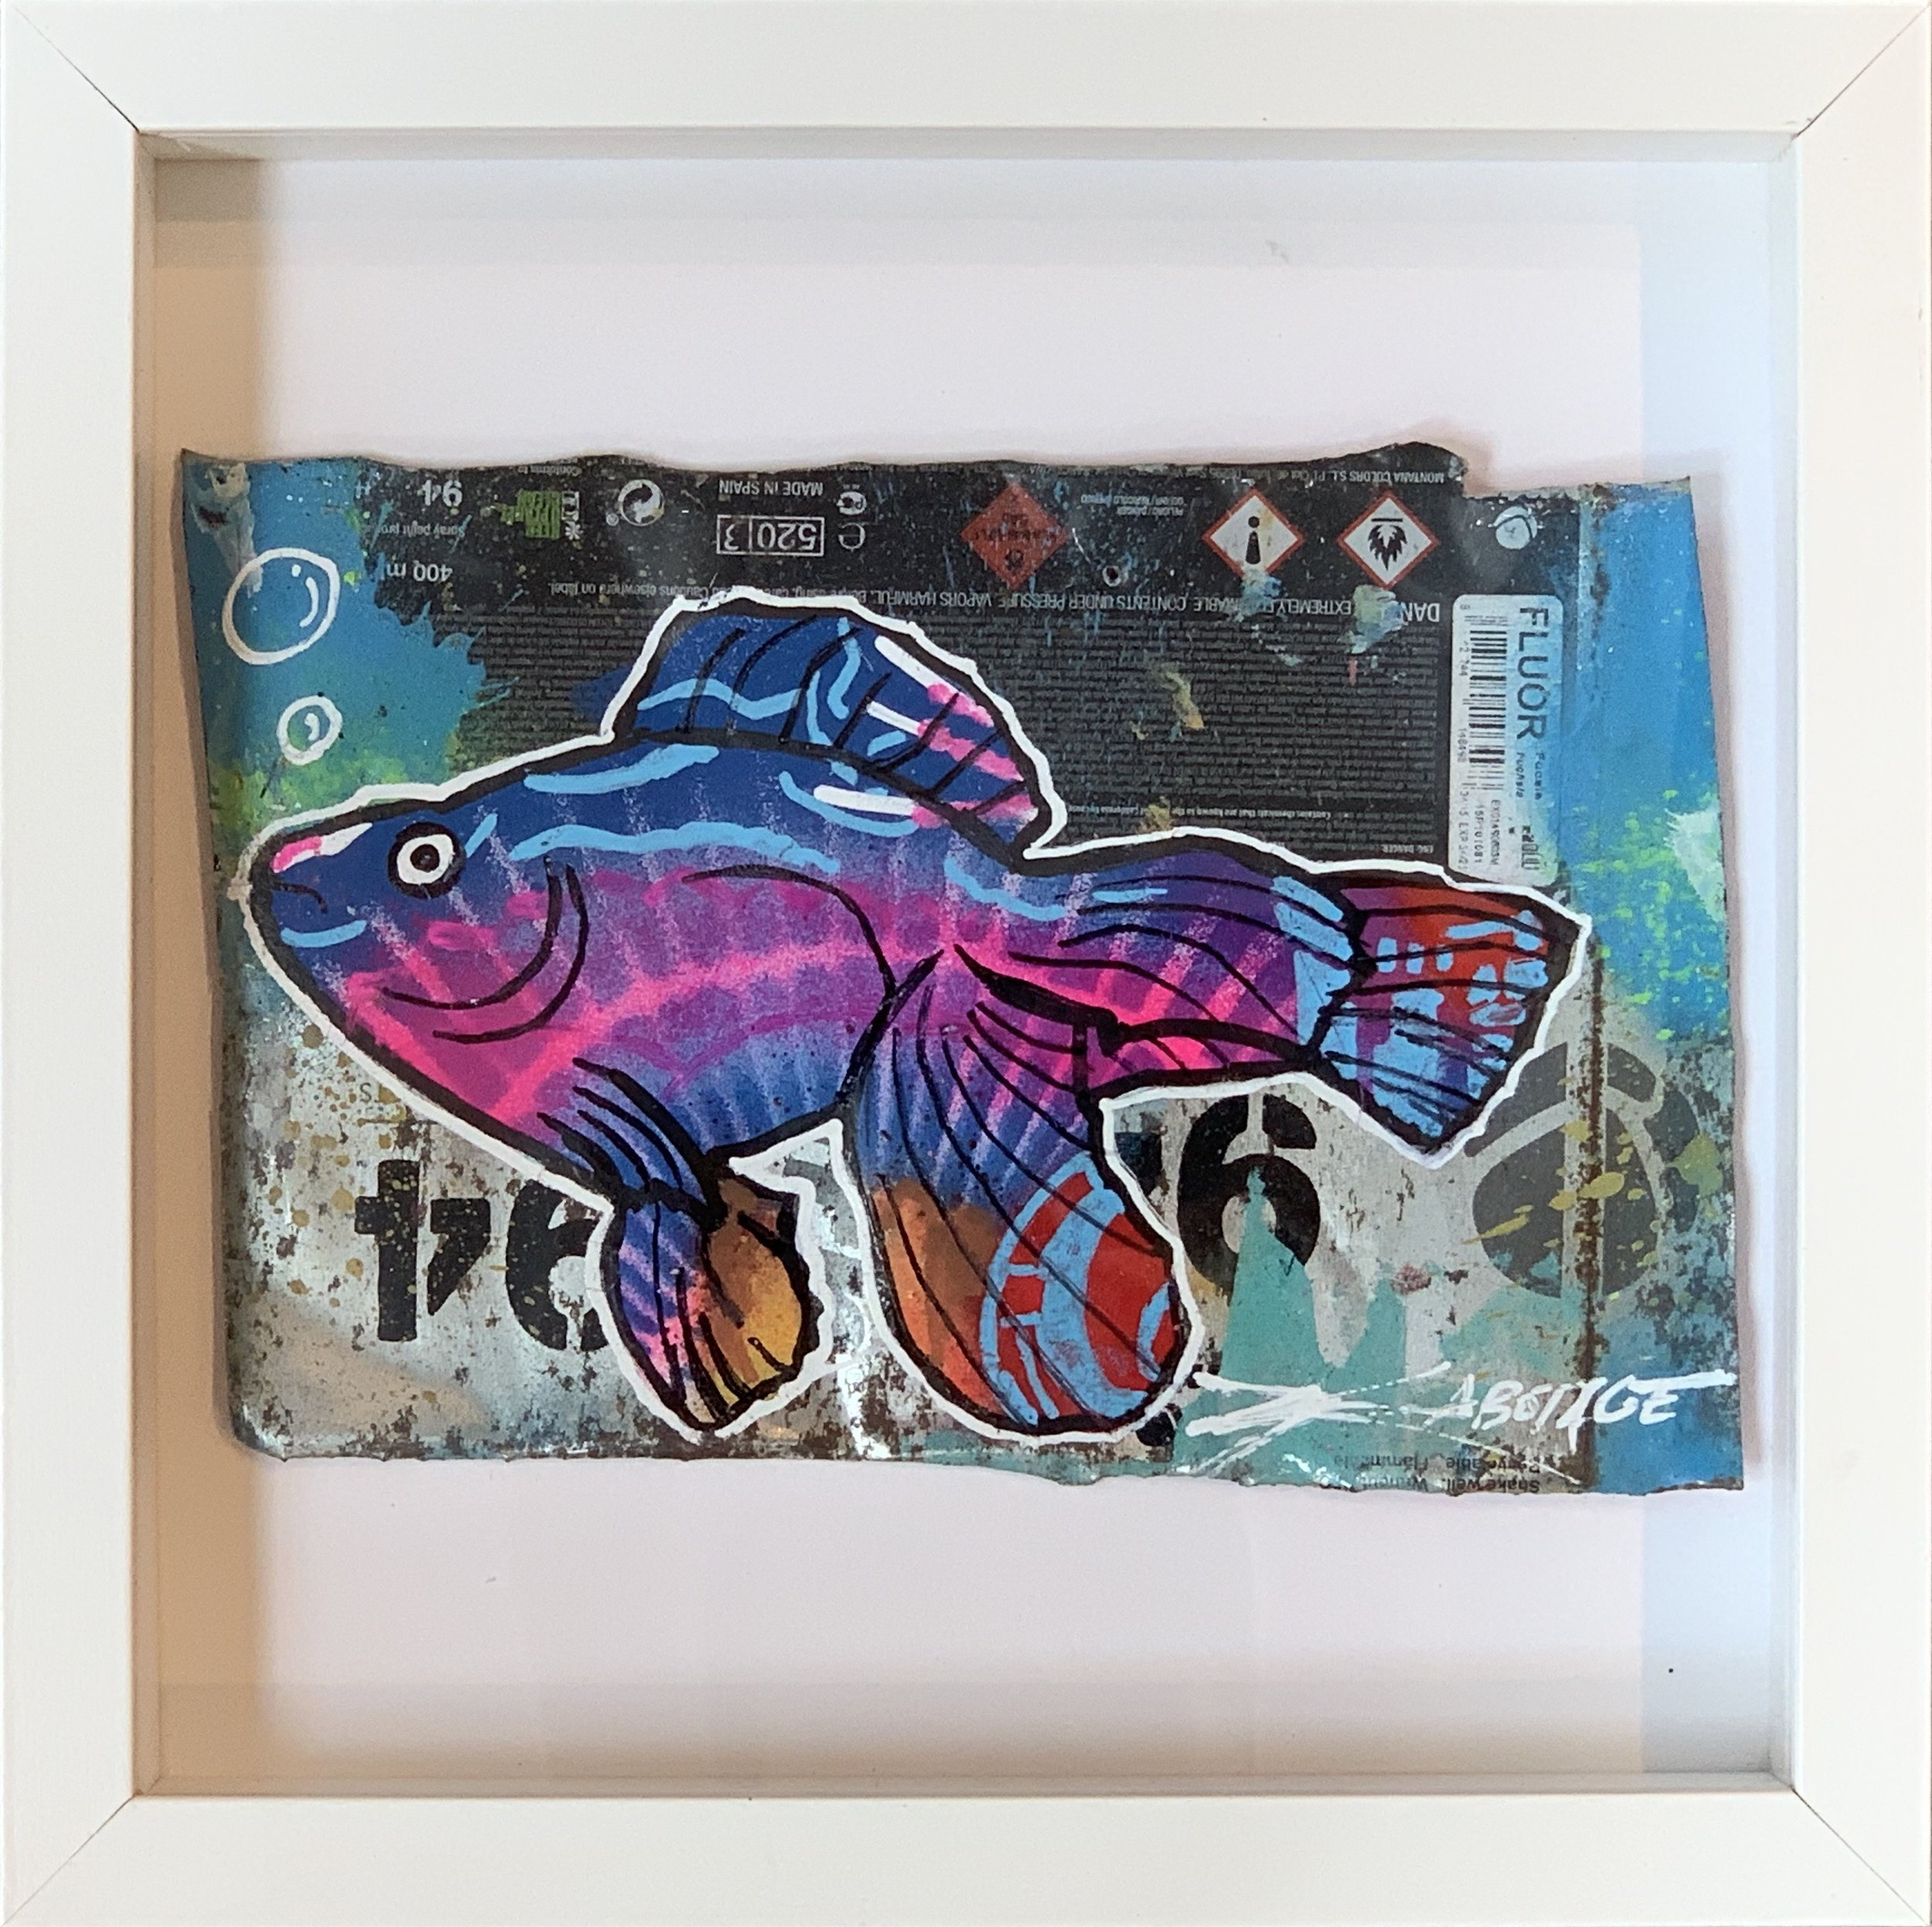 """Mini Can Can Flour Fish"" Stencil Mixed Media Spray Paint and Graffiti Markers on deconstructed Can Background White Framed 26 x 26 cm 2018"